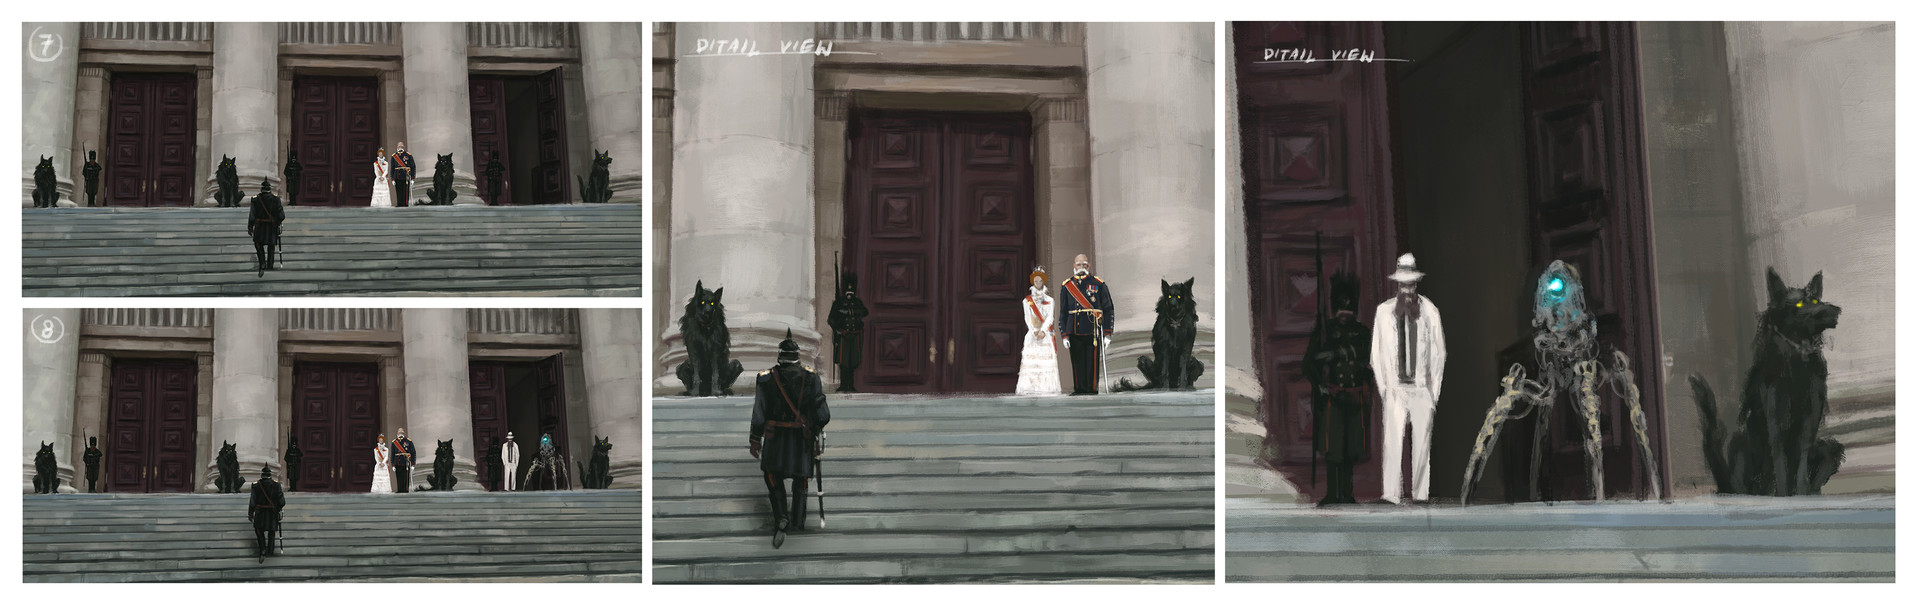 Jakub rozalski foundations of the empire process2